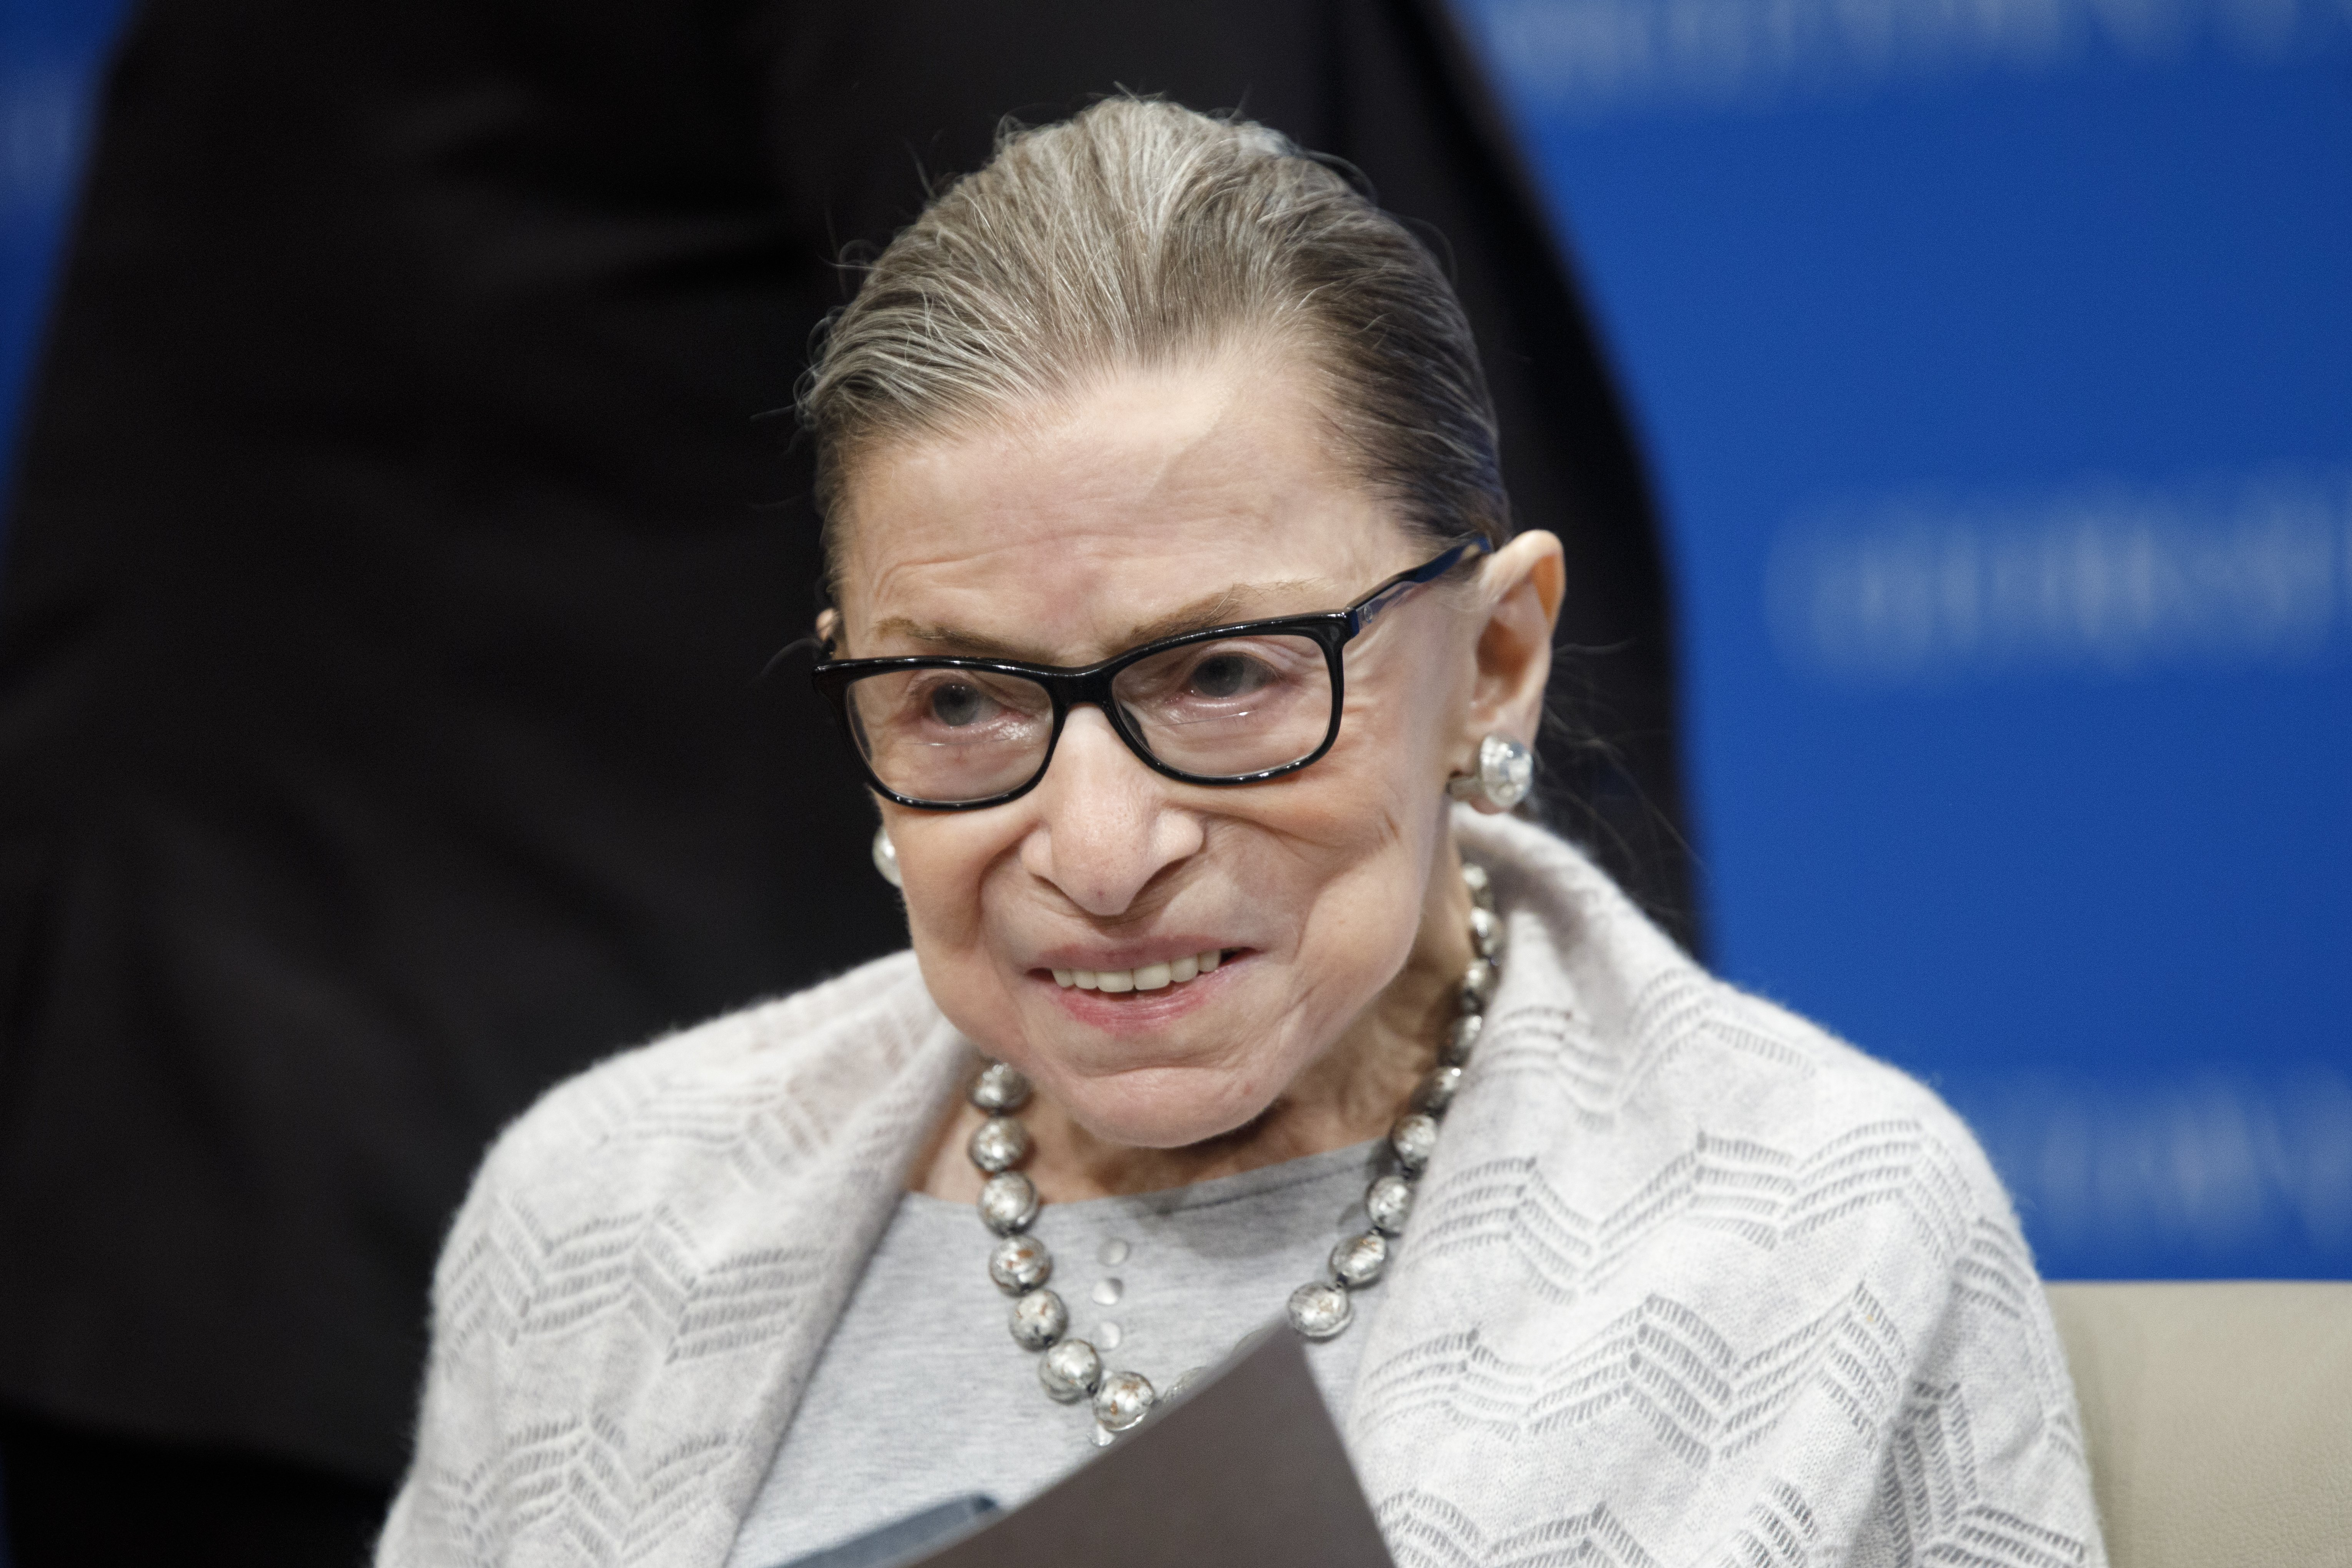 Late 87-year-od Supreme Court Justice Ruth Bader Ginsburg at the Georgetown Law Center in Washington, DC. | Photo: Tom Brenner/Getty Images